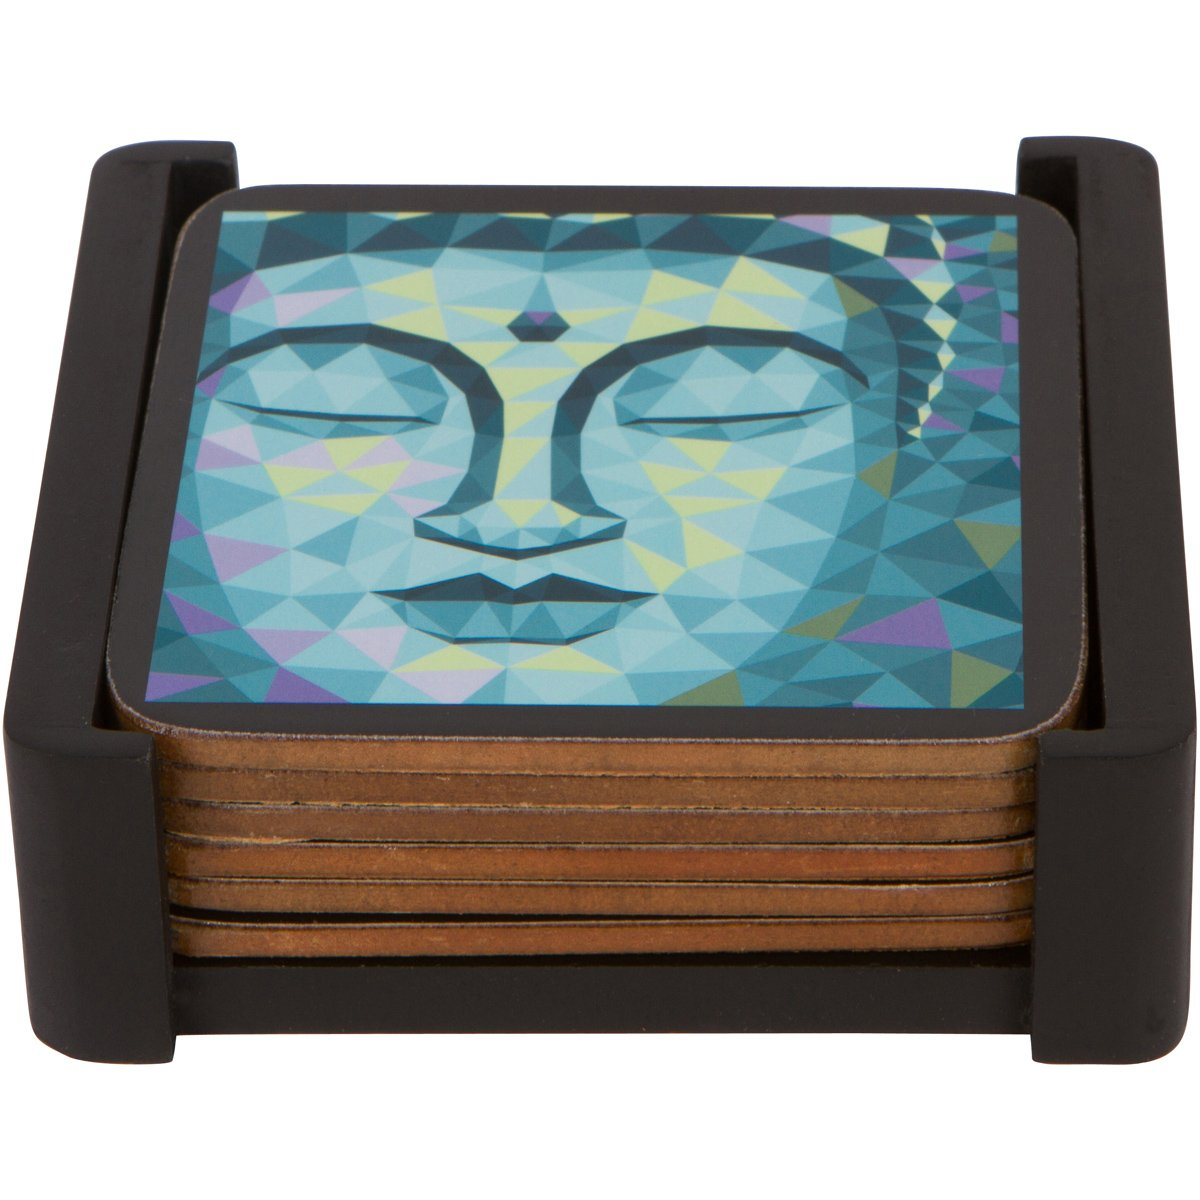 Planet Ethnic Colorful Buddha Designer Wooden MDF Cork Coaster Set (6 coasters, each almost 4 X 4 inches) with matching wooden coaster holder